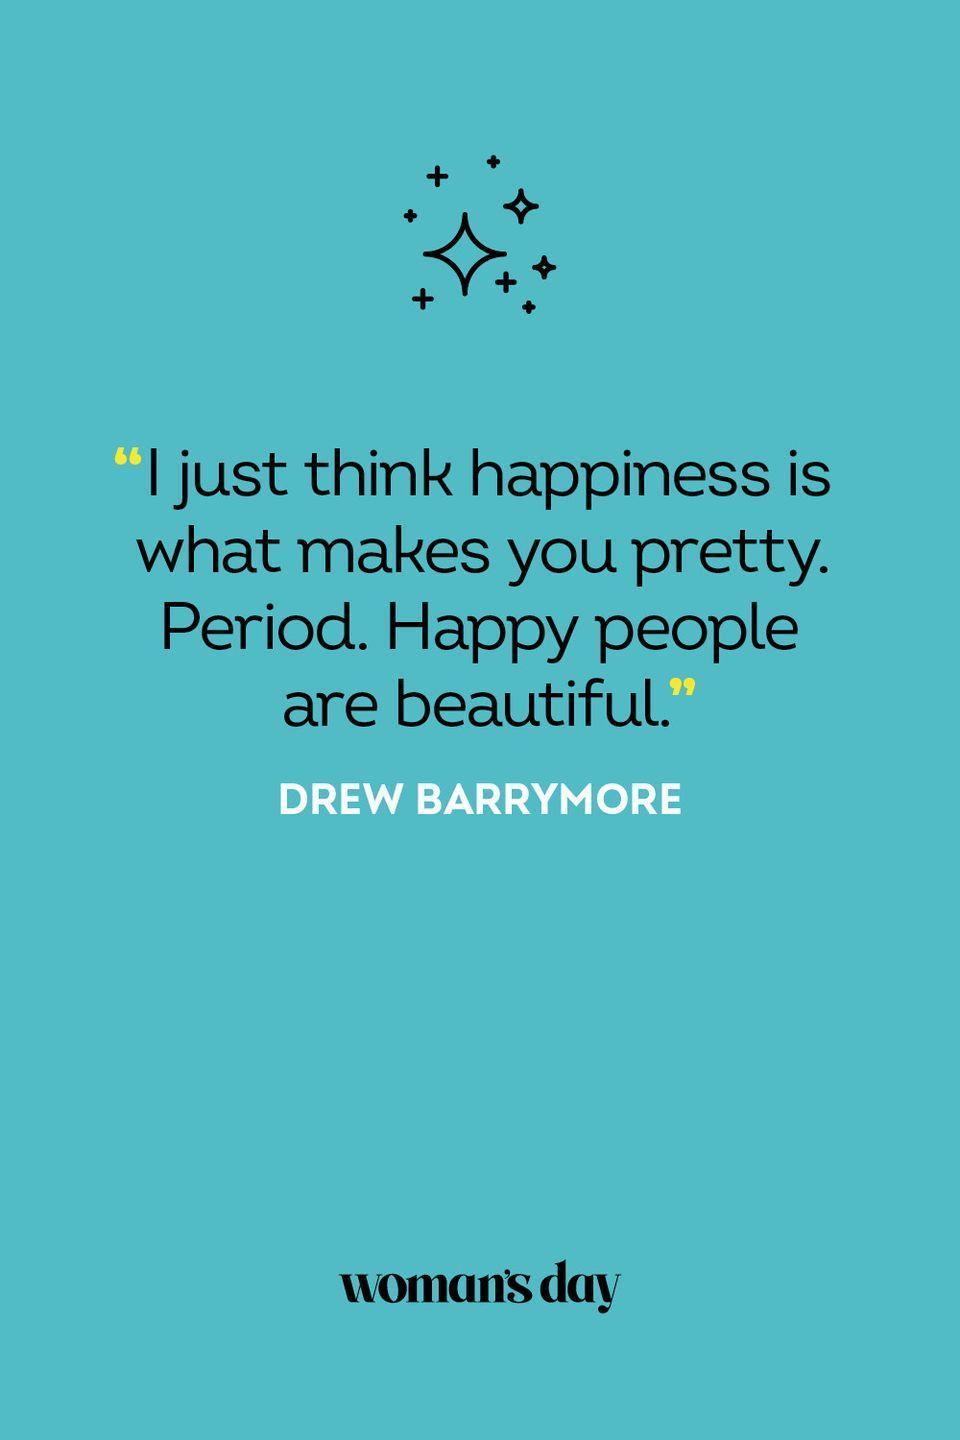 <p>I just think happiness is what makes you pretty. Period. Happy people are beautiful.</p>